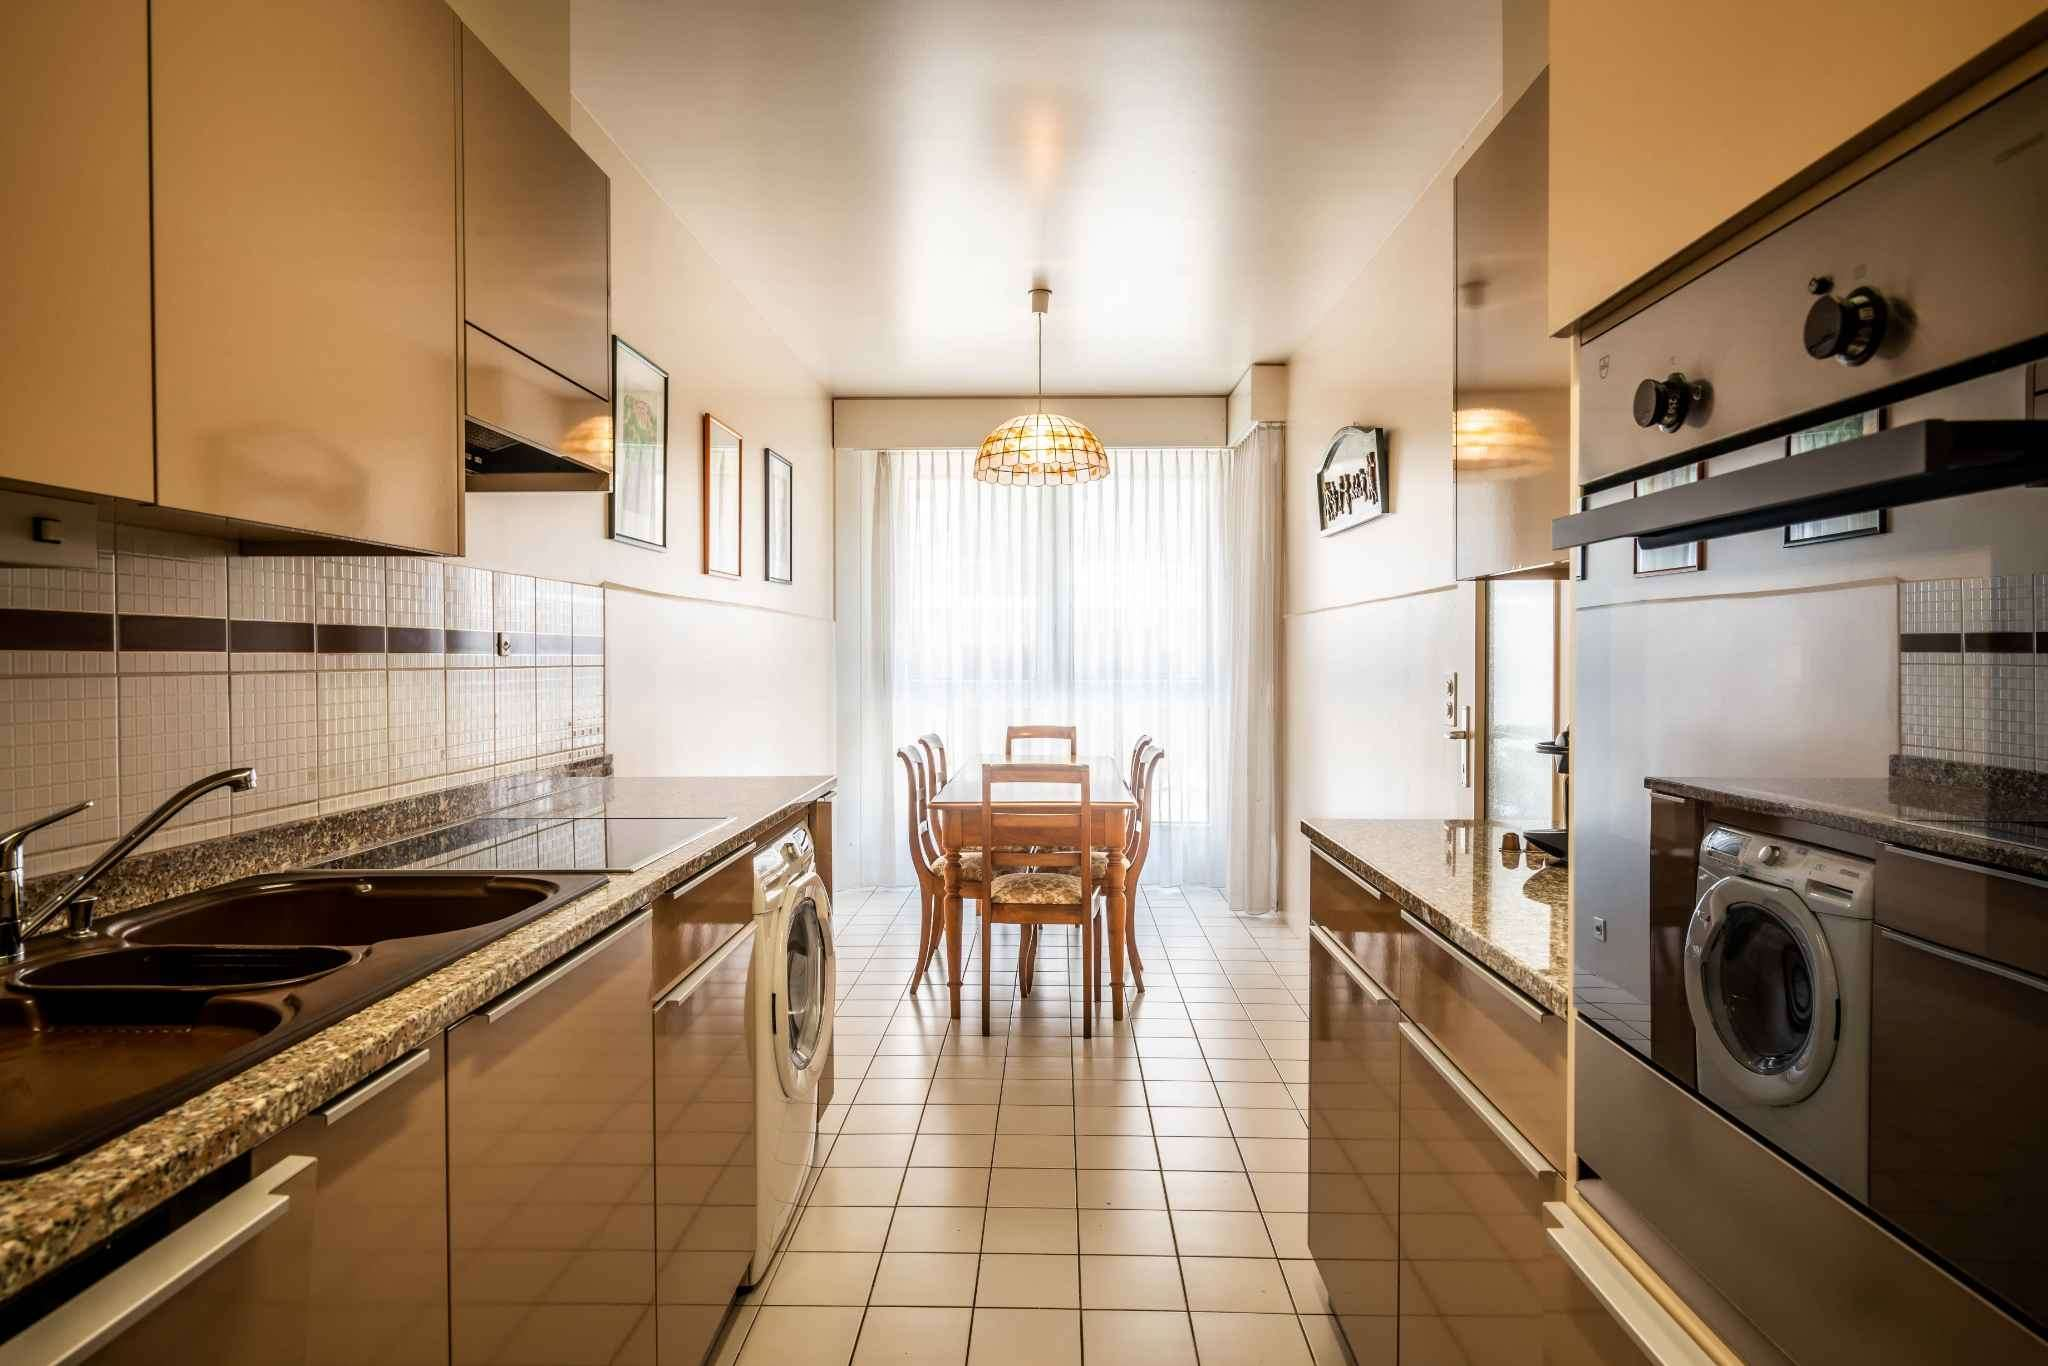 Magnificent 4-room apartment in central Eaux-Vives